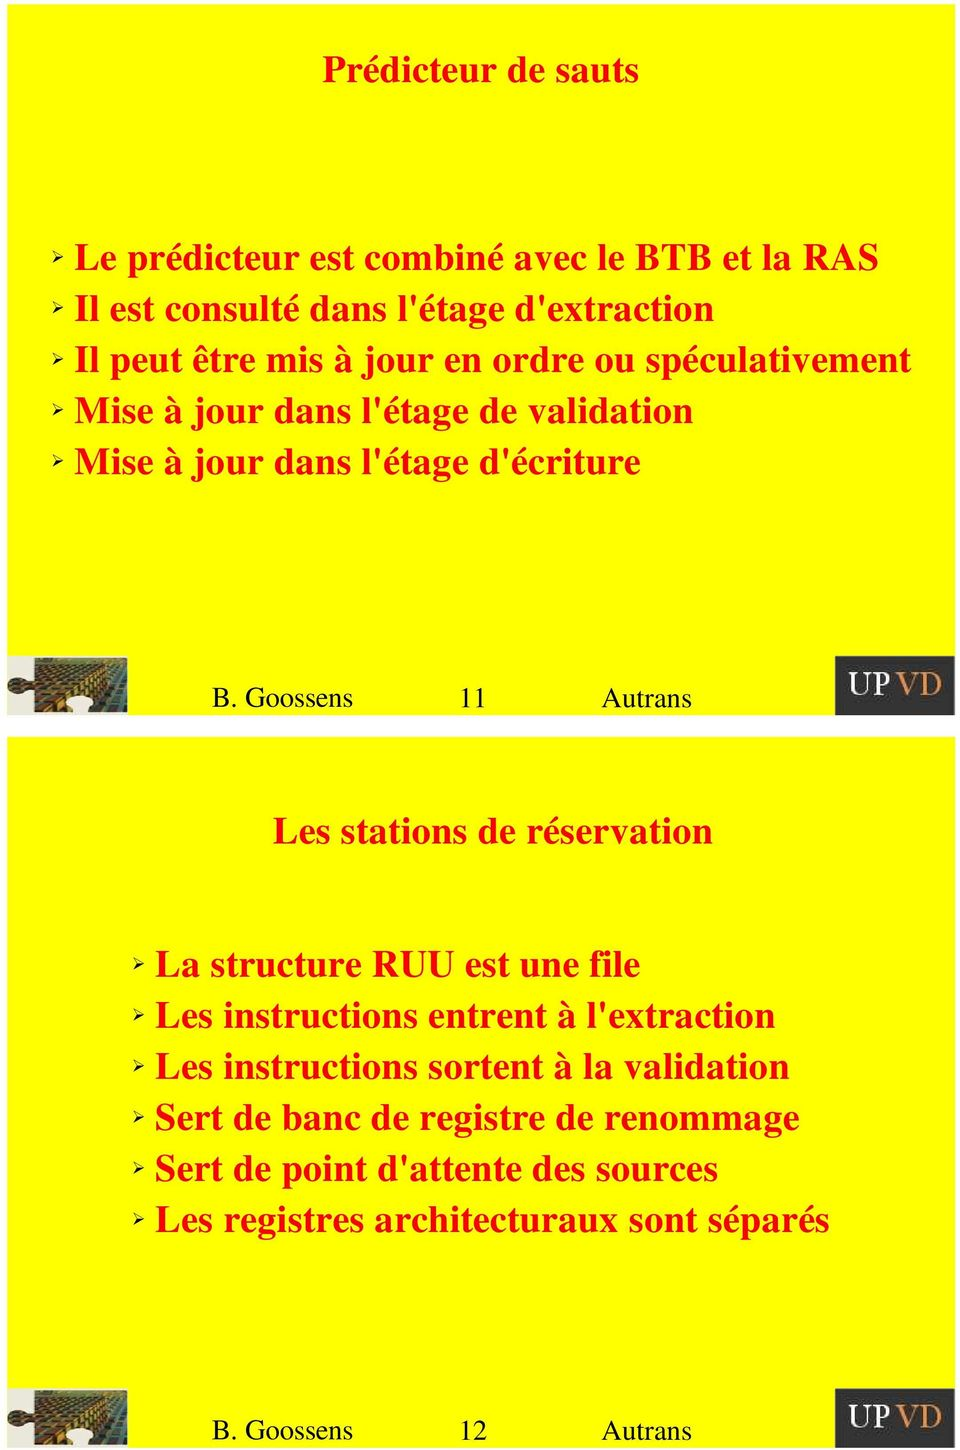 Goossens 11 Autrans Les stations de réservation La structure RUU est une file Les instructions entrent à l'extraction Les instructions